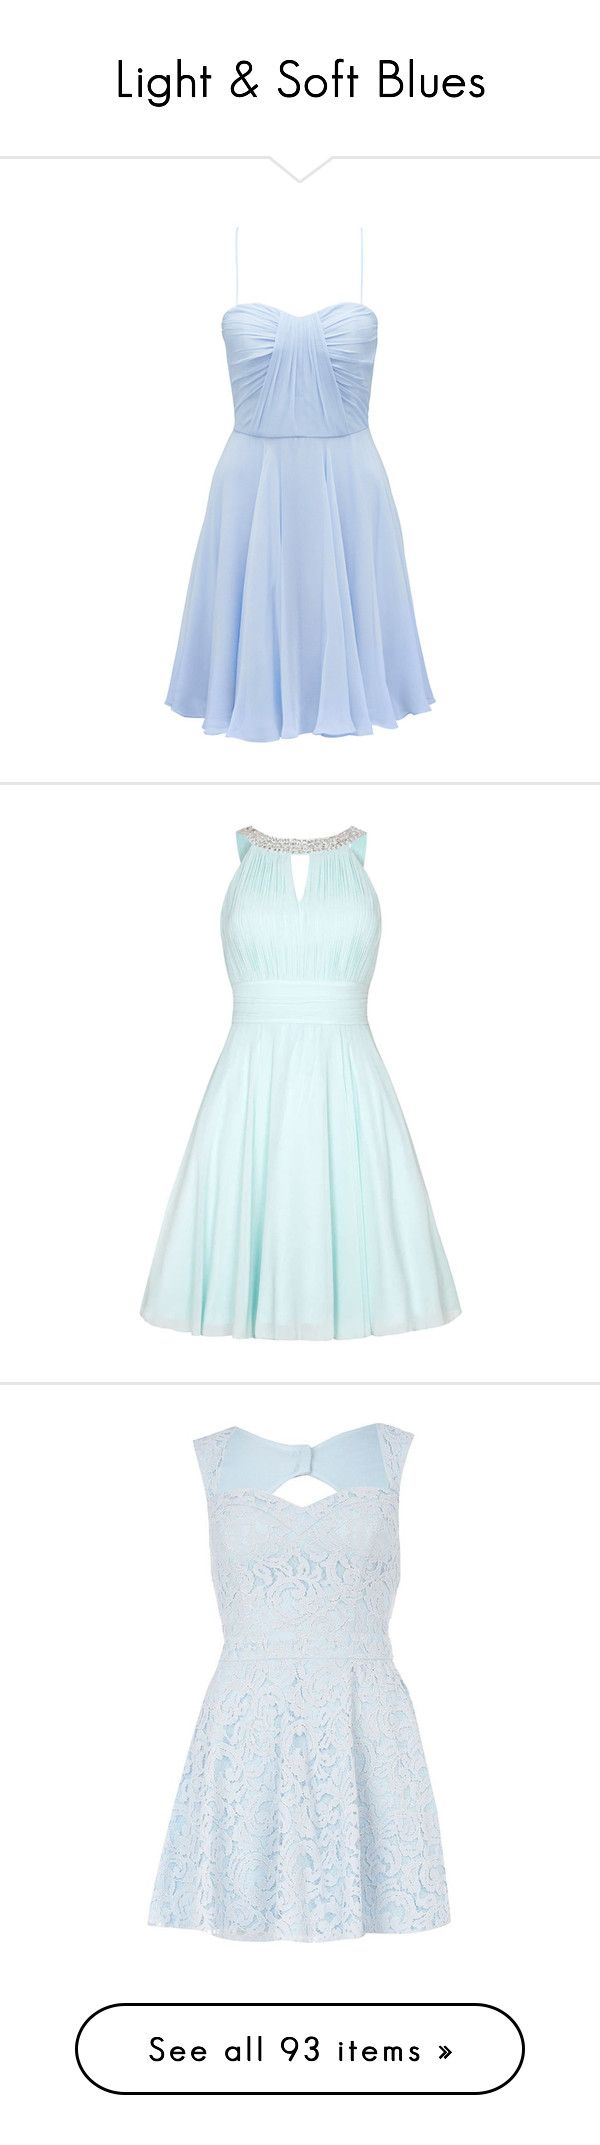 """Light & Soft Blues"" by mscody ❤ liked on Polyvore featuring dresses, vestidos, short dresses, blue, powder blue, holiday cocktail dresses, pleated cocktail dress, cocktail bridesmaid dresses, holiday dresses and special occasion dresses"